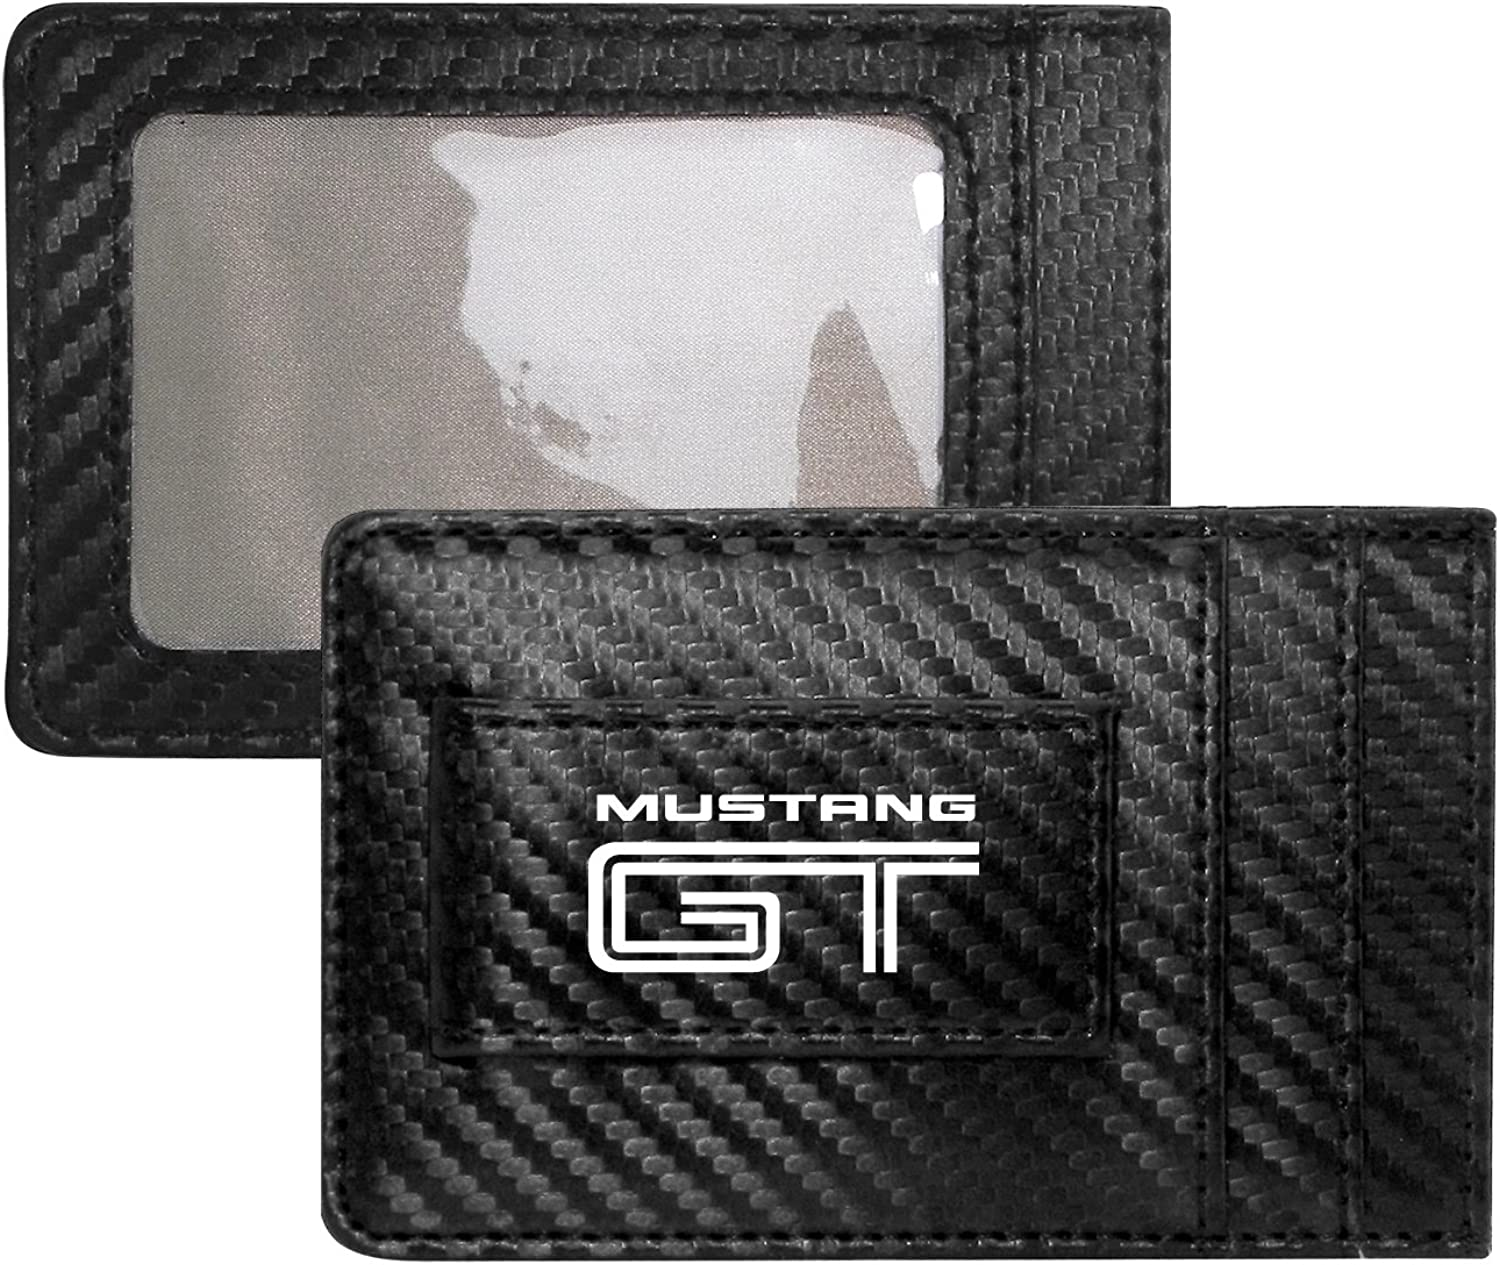 Ford Mustang GT Black Carbon Fiber Leather Wallet RFID Block Card Case Money Clip